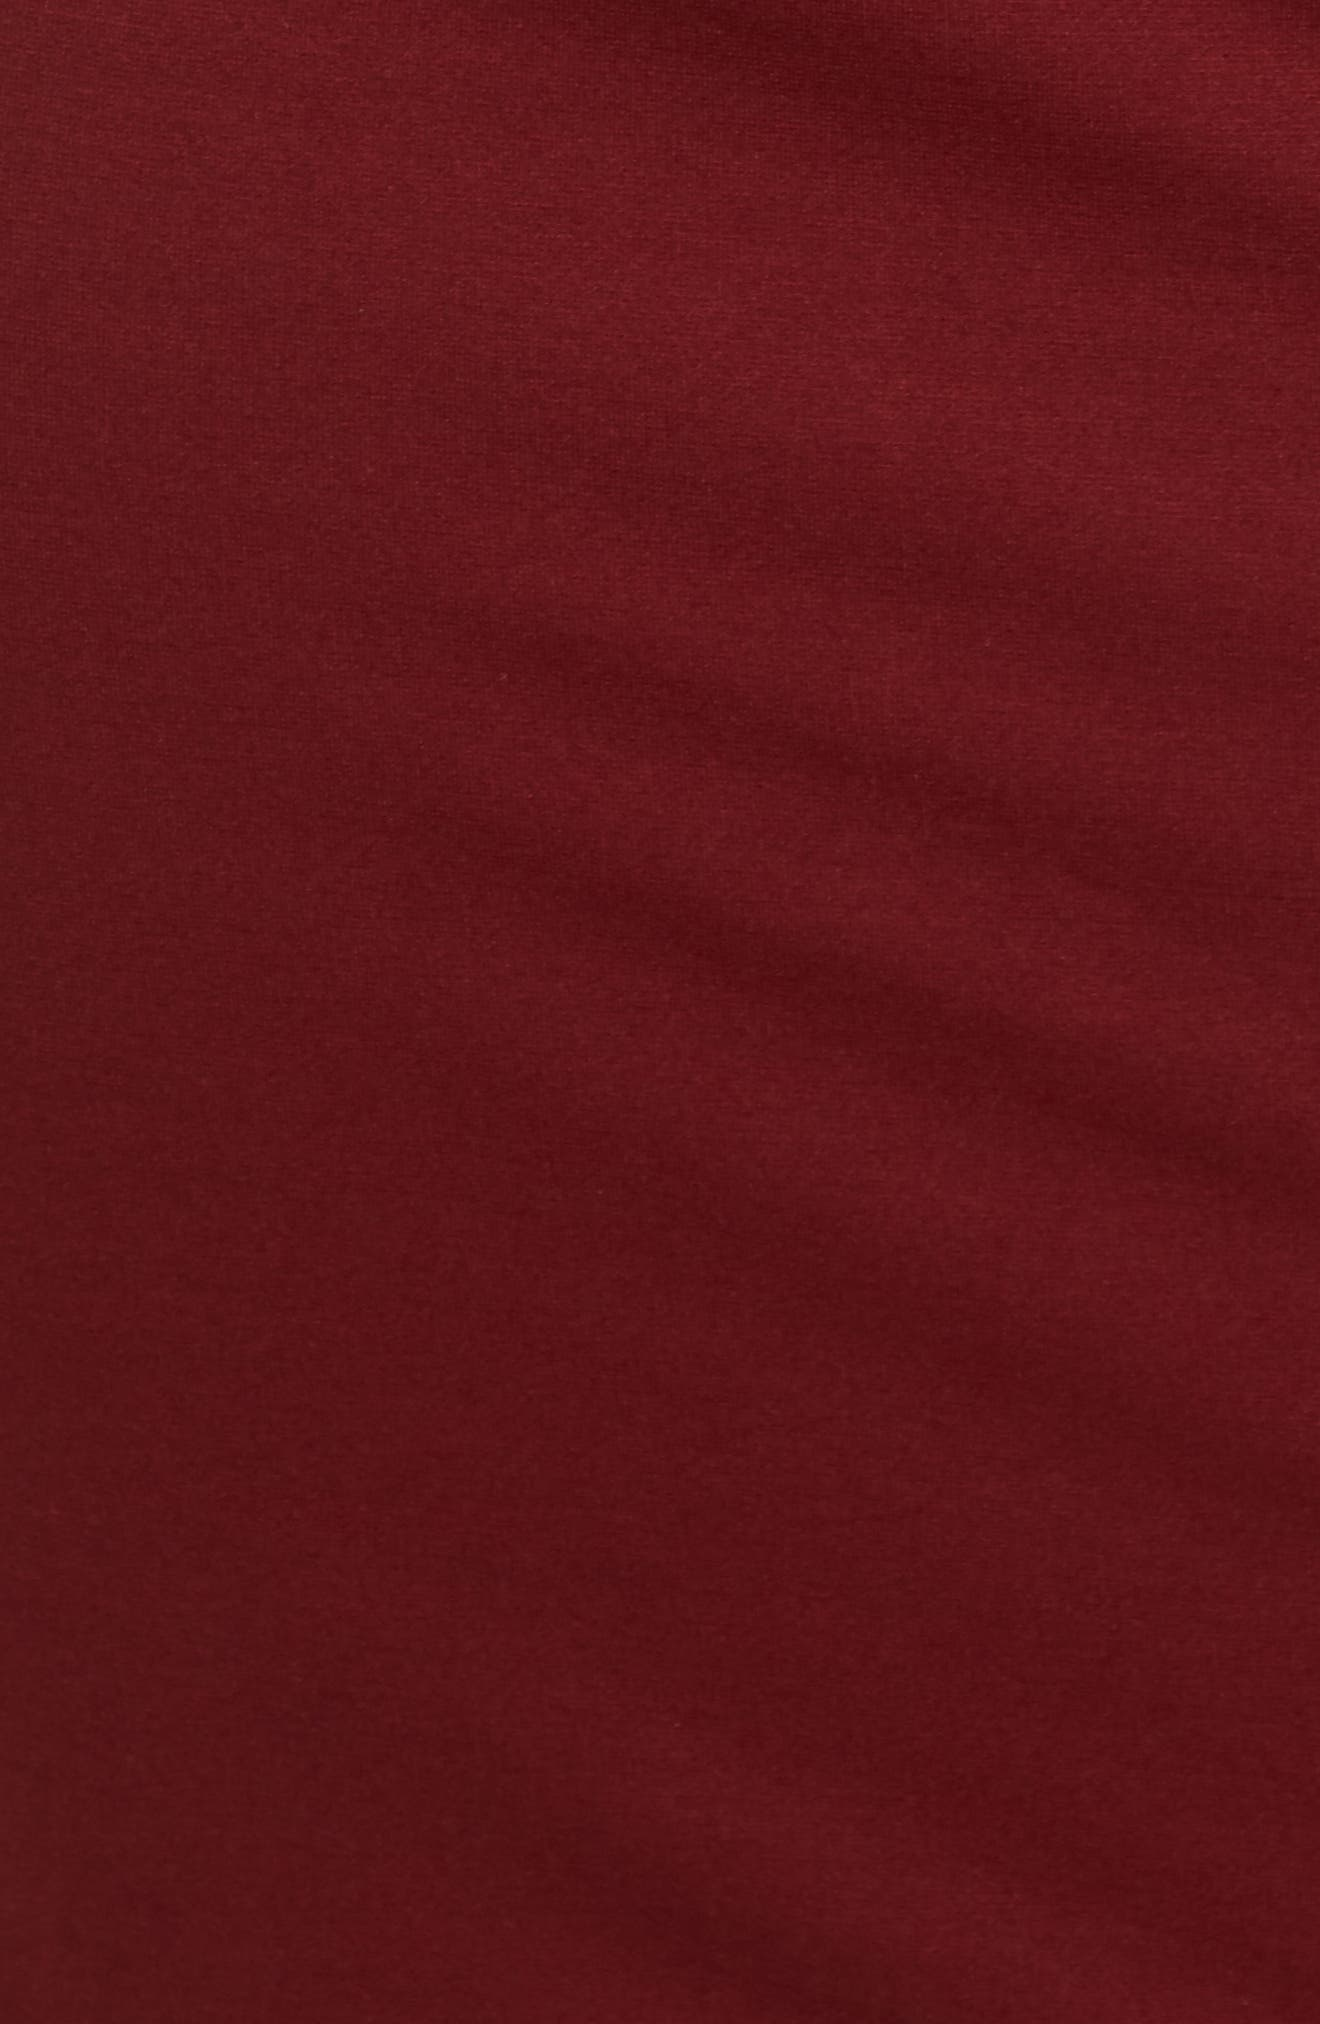 Peplum Overlay Body-Con Dress,                             Alternate thumbnail 6, color,                             Oxblood